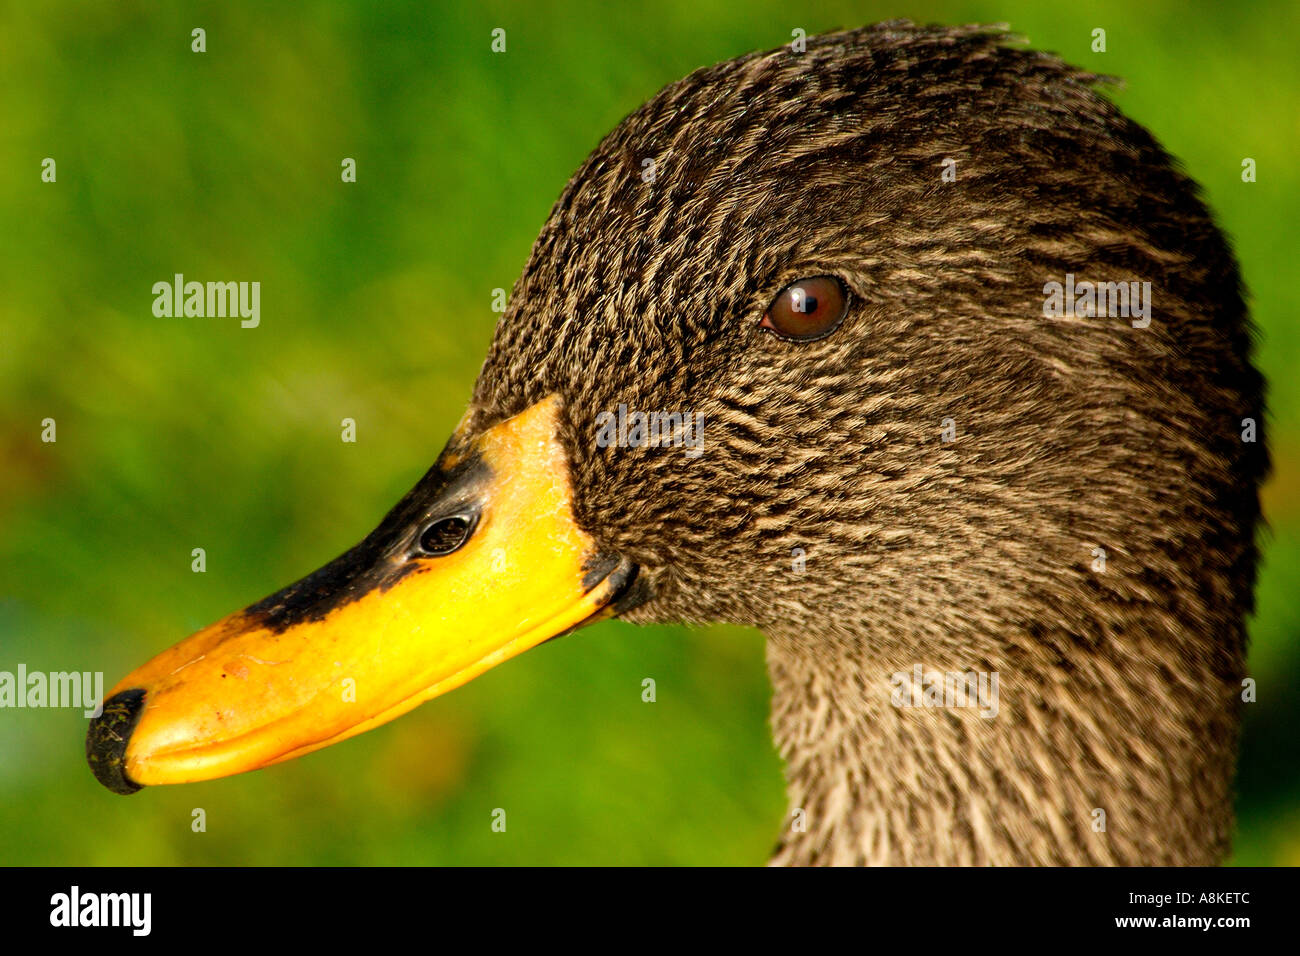 Nice clear close up head portrait of a light brown duck with bright ...